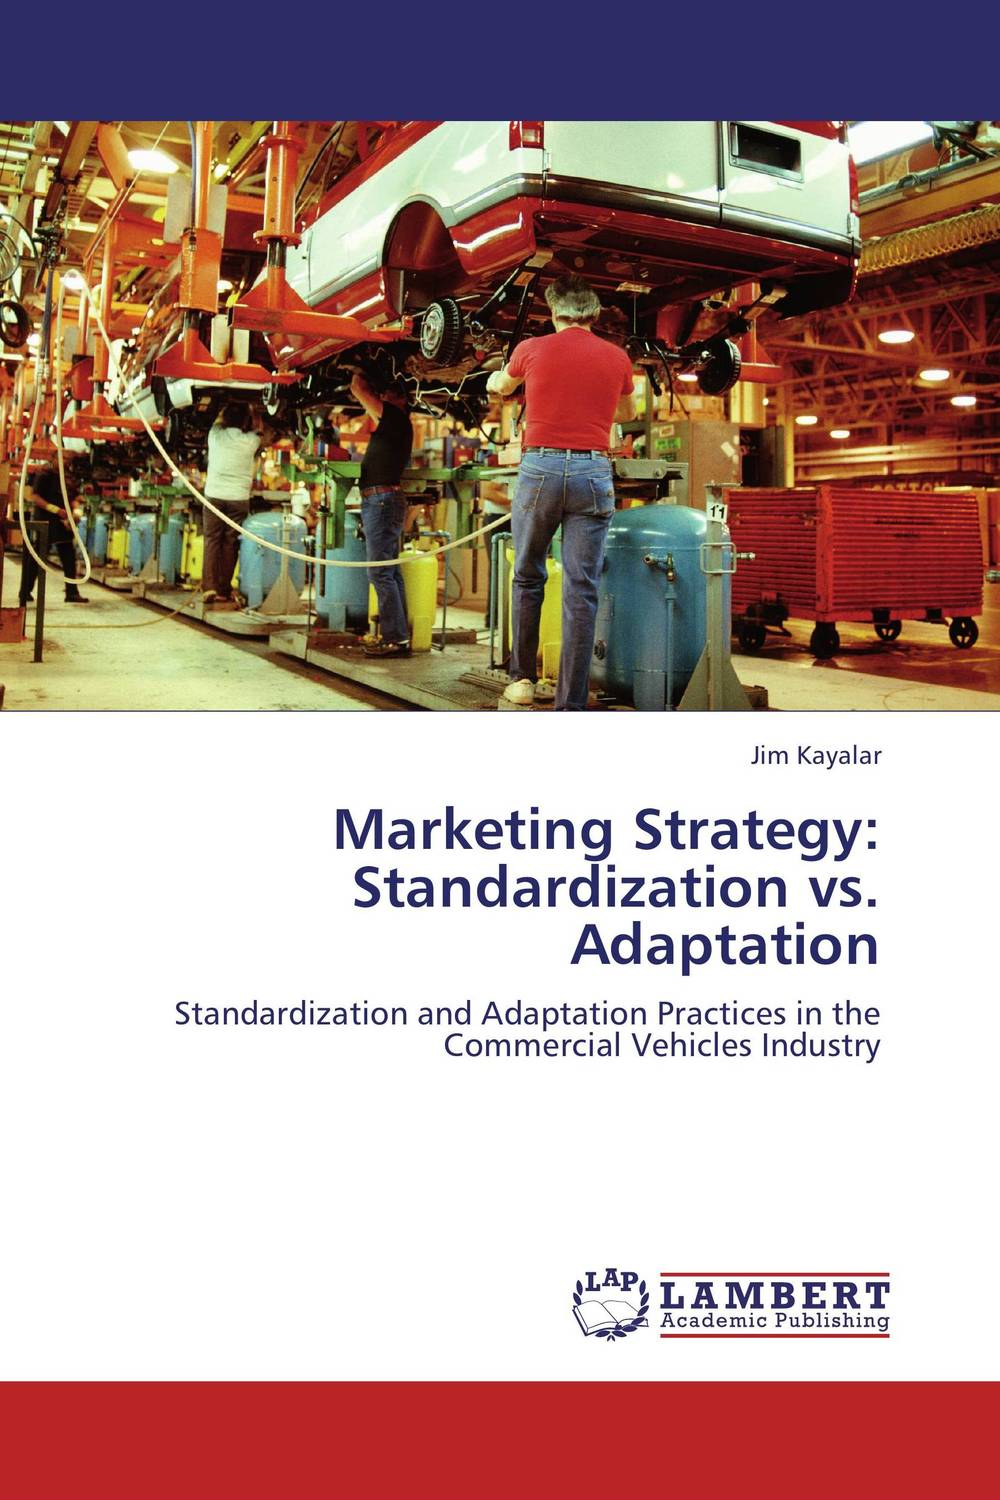 Marketing Strategy: Standardization vs. Adaptation thomas cleary the book of leadership and strategy